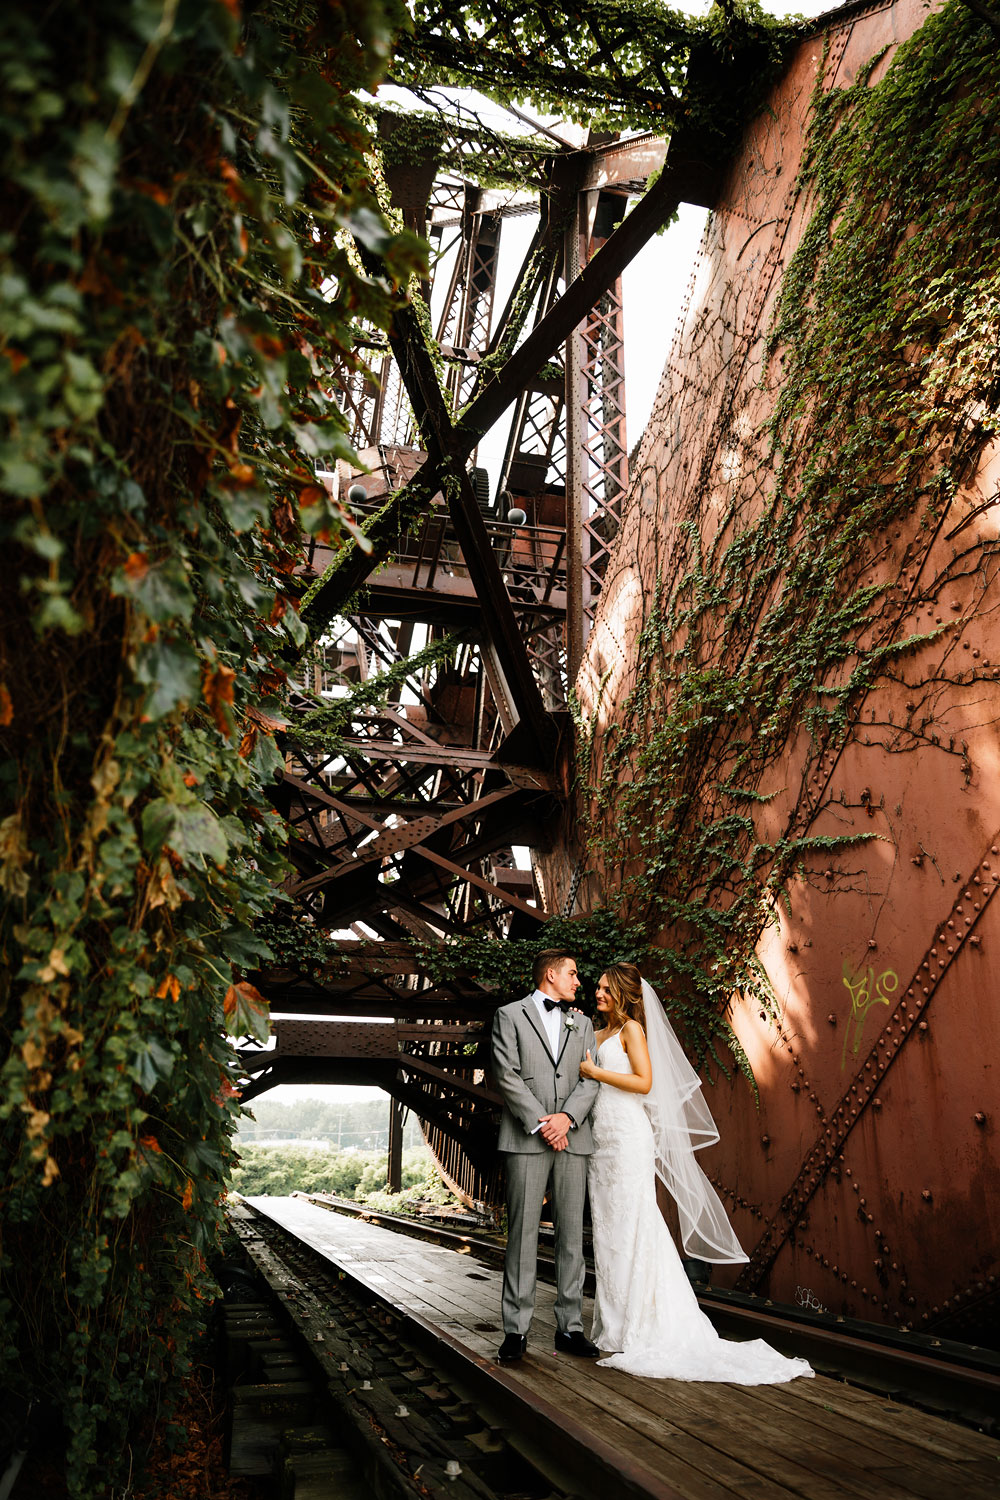 tenk-west-bank-flats-photography-wedding-photographers-in-cleveland-downtown-industrial-99.jpg